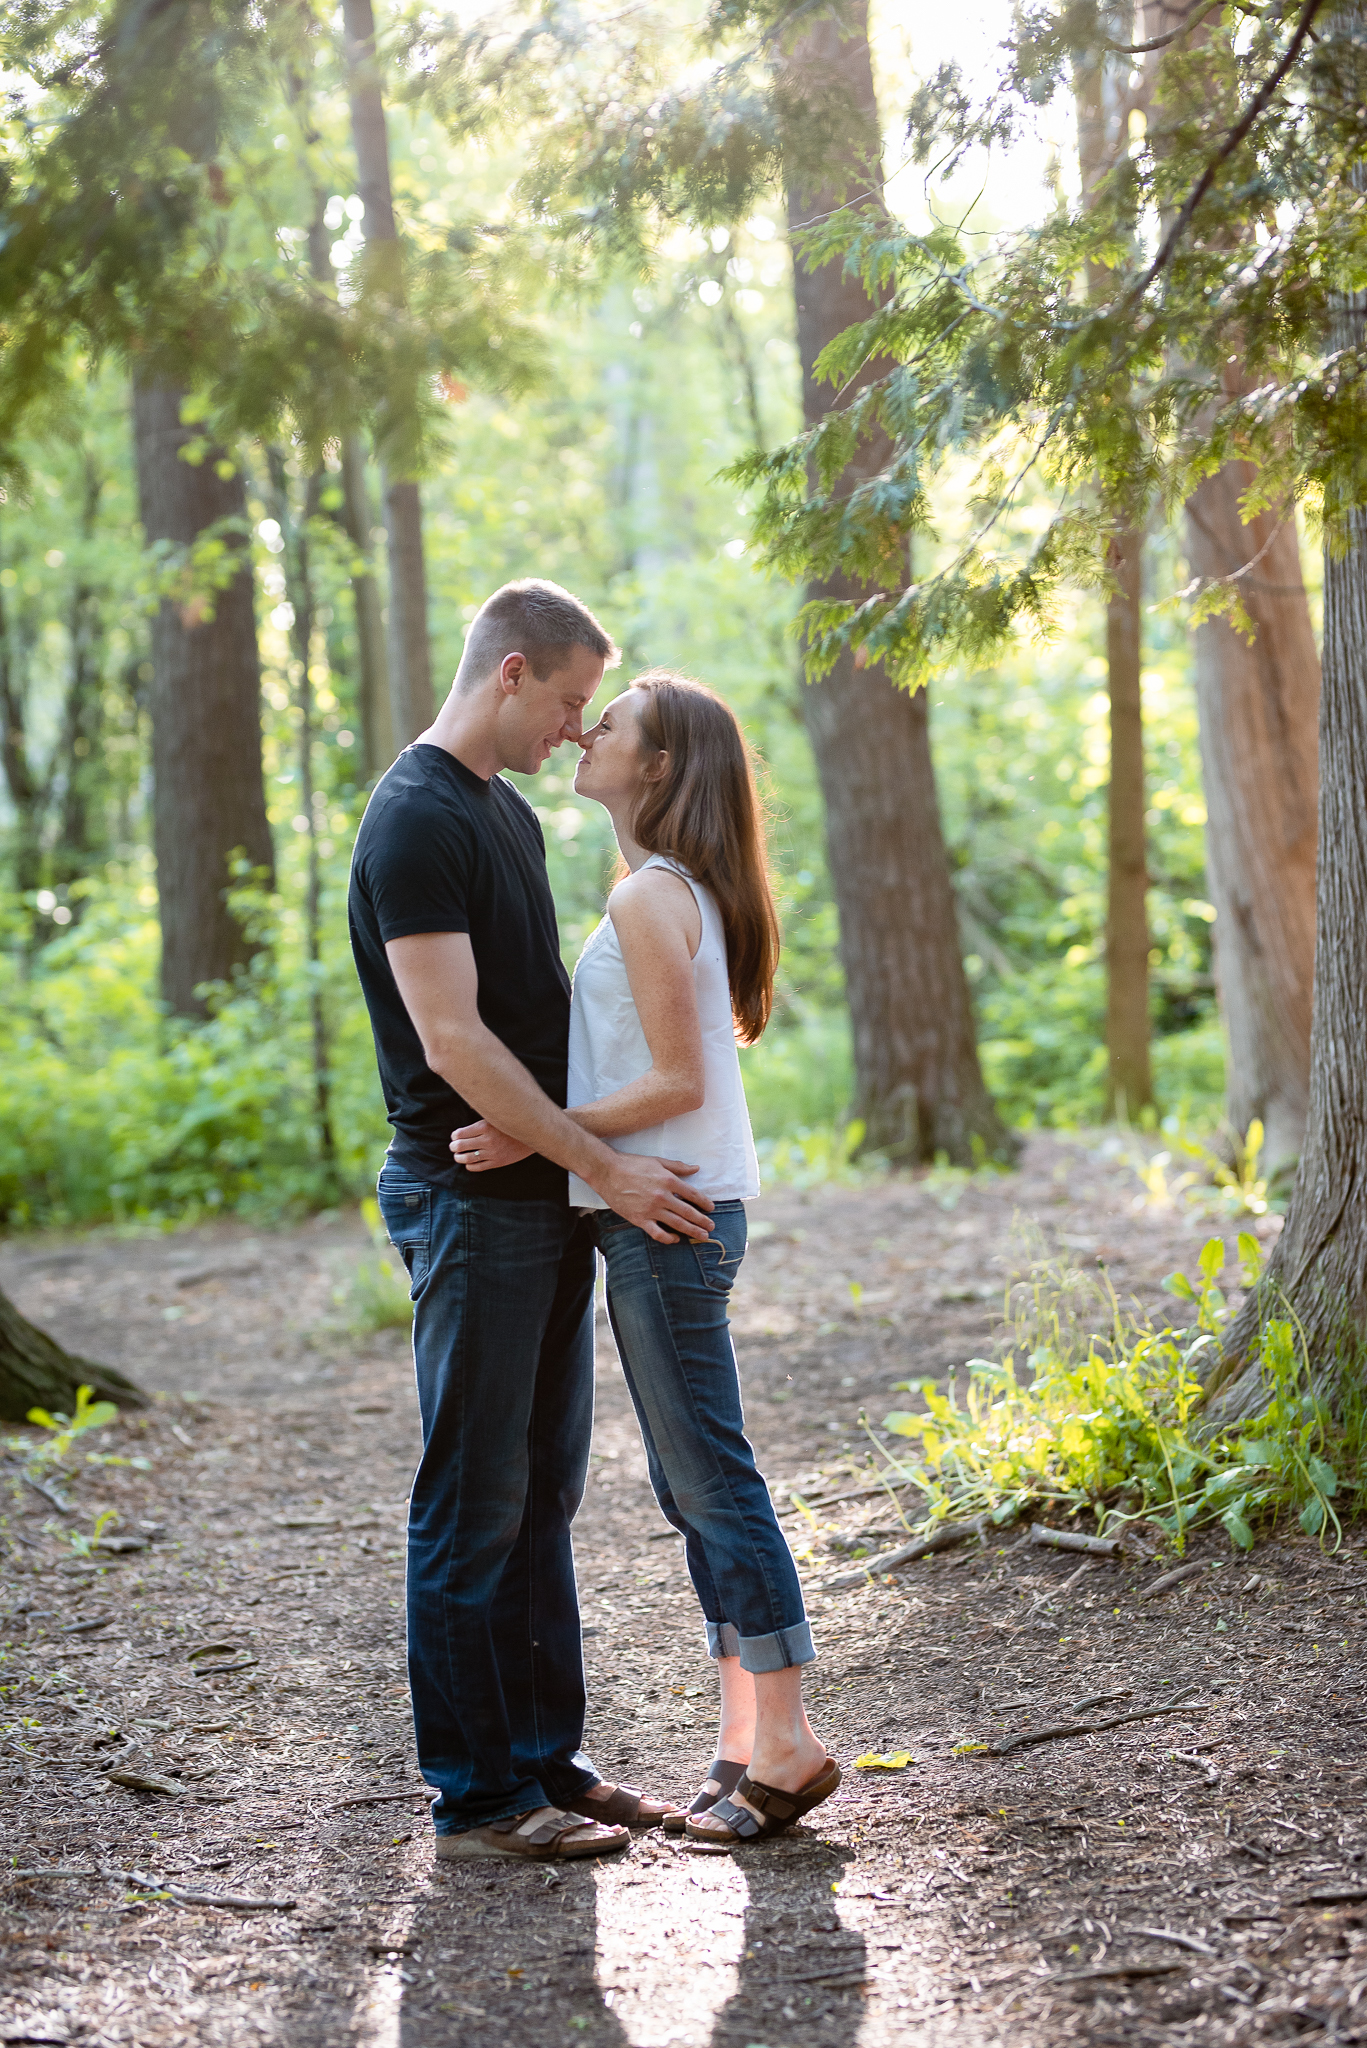 Couples60NaomiLuciennePhotography062019-5-Edit.jpg